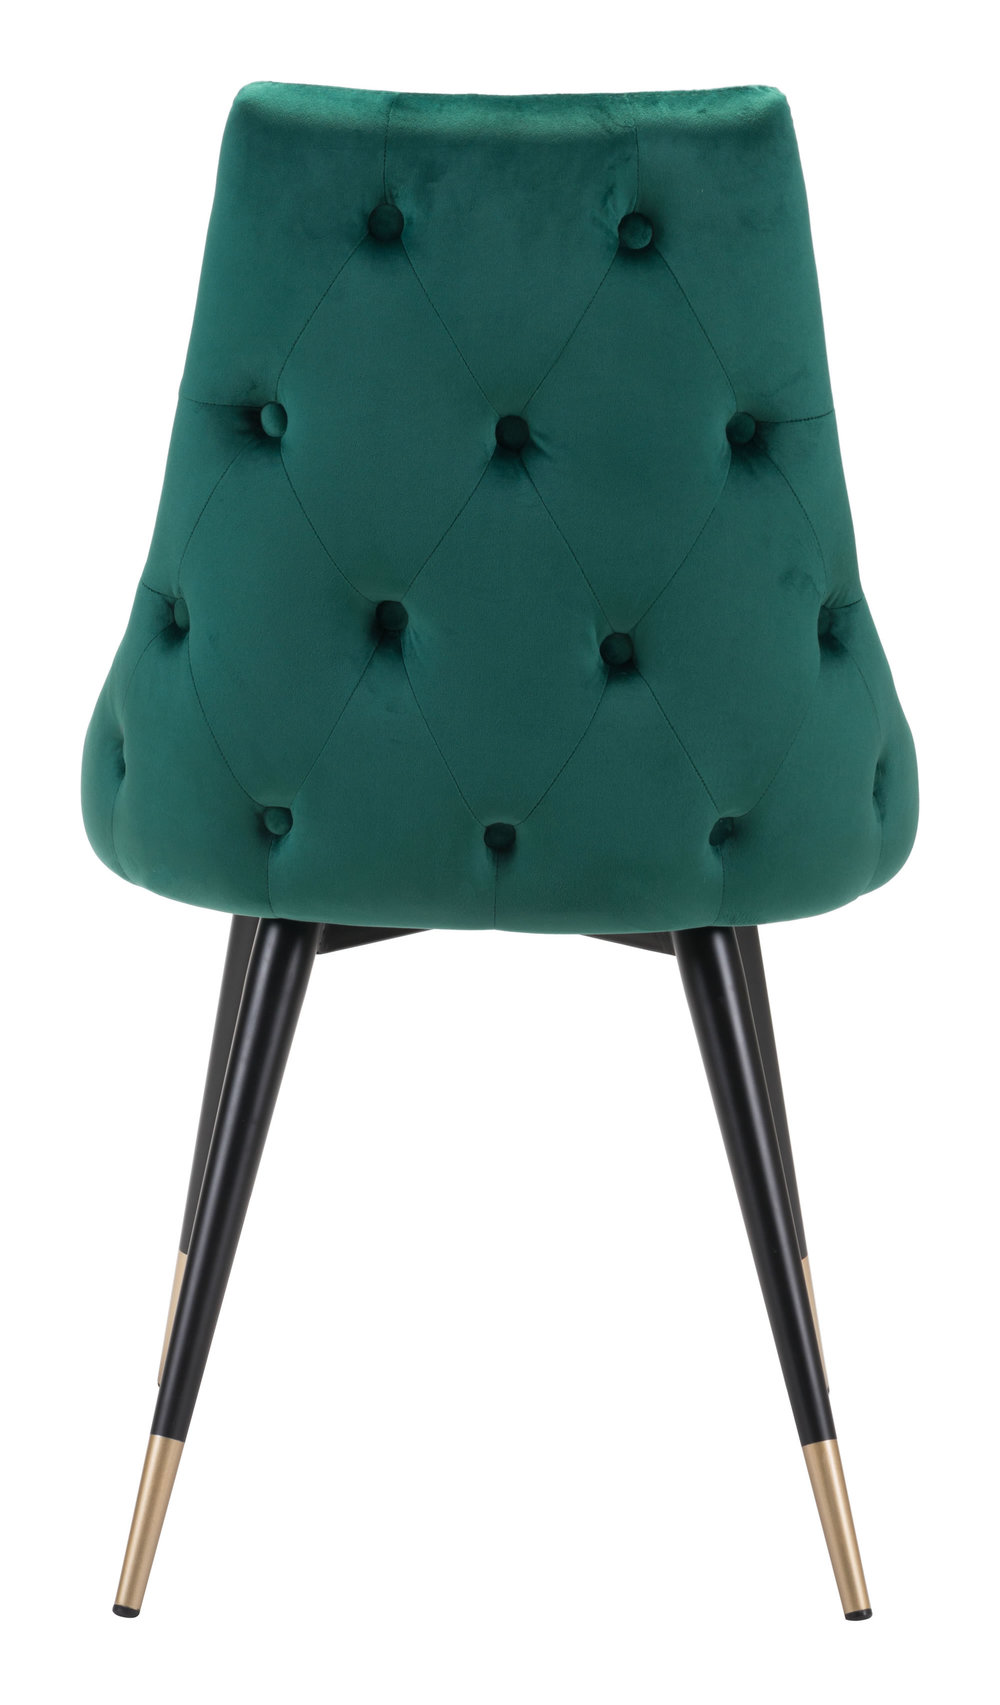 ZUO MODERN CONTEMPORARY, INC - Piccolo Dining Chair - Set of 2 - Green